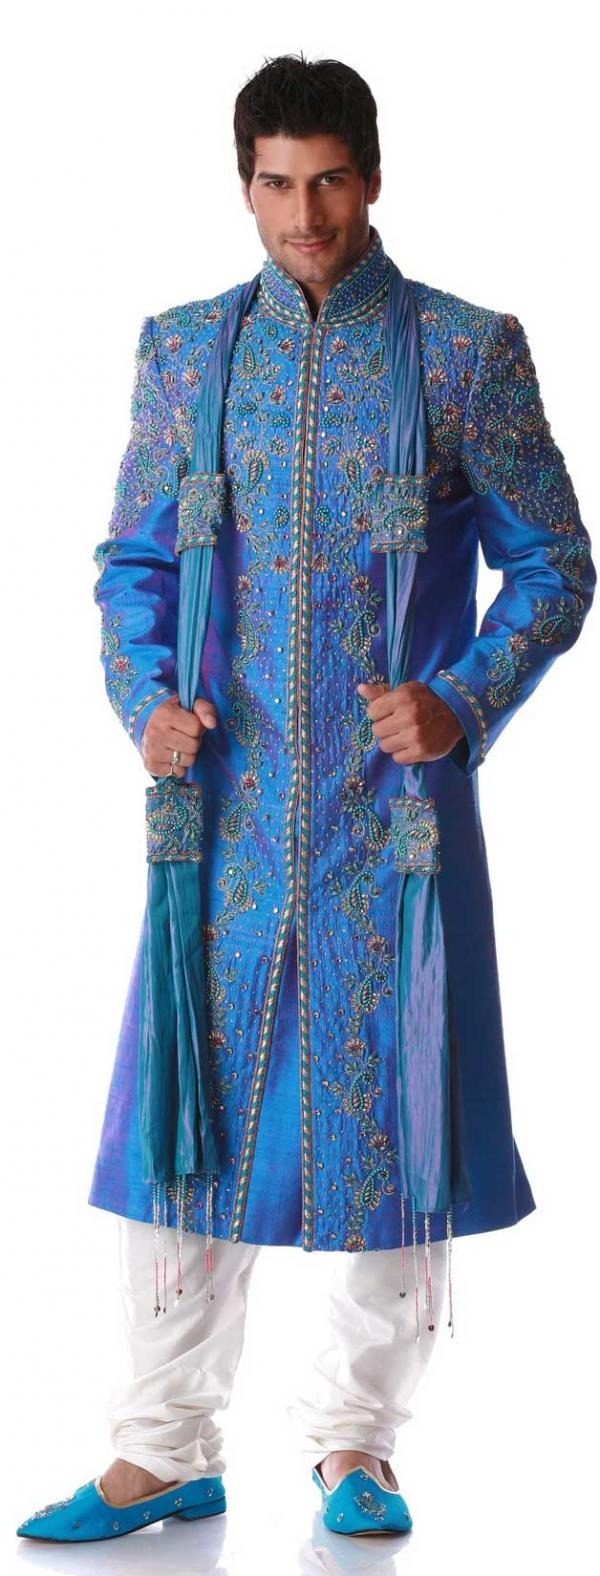 36 best Men\'s Indian wear images on Pinterest | Groom attire, Groom ...